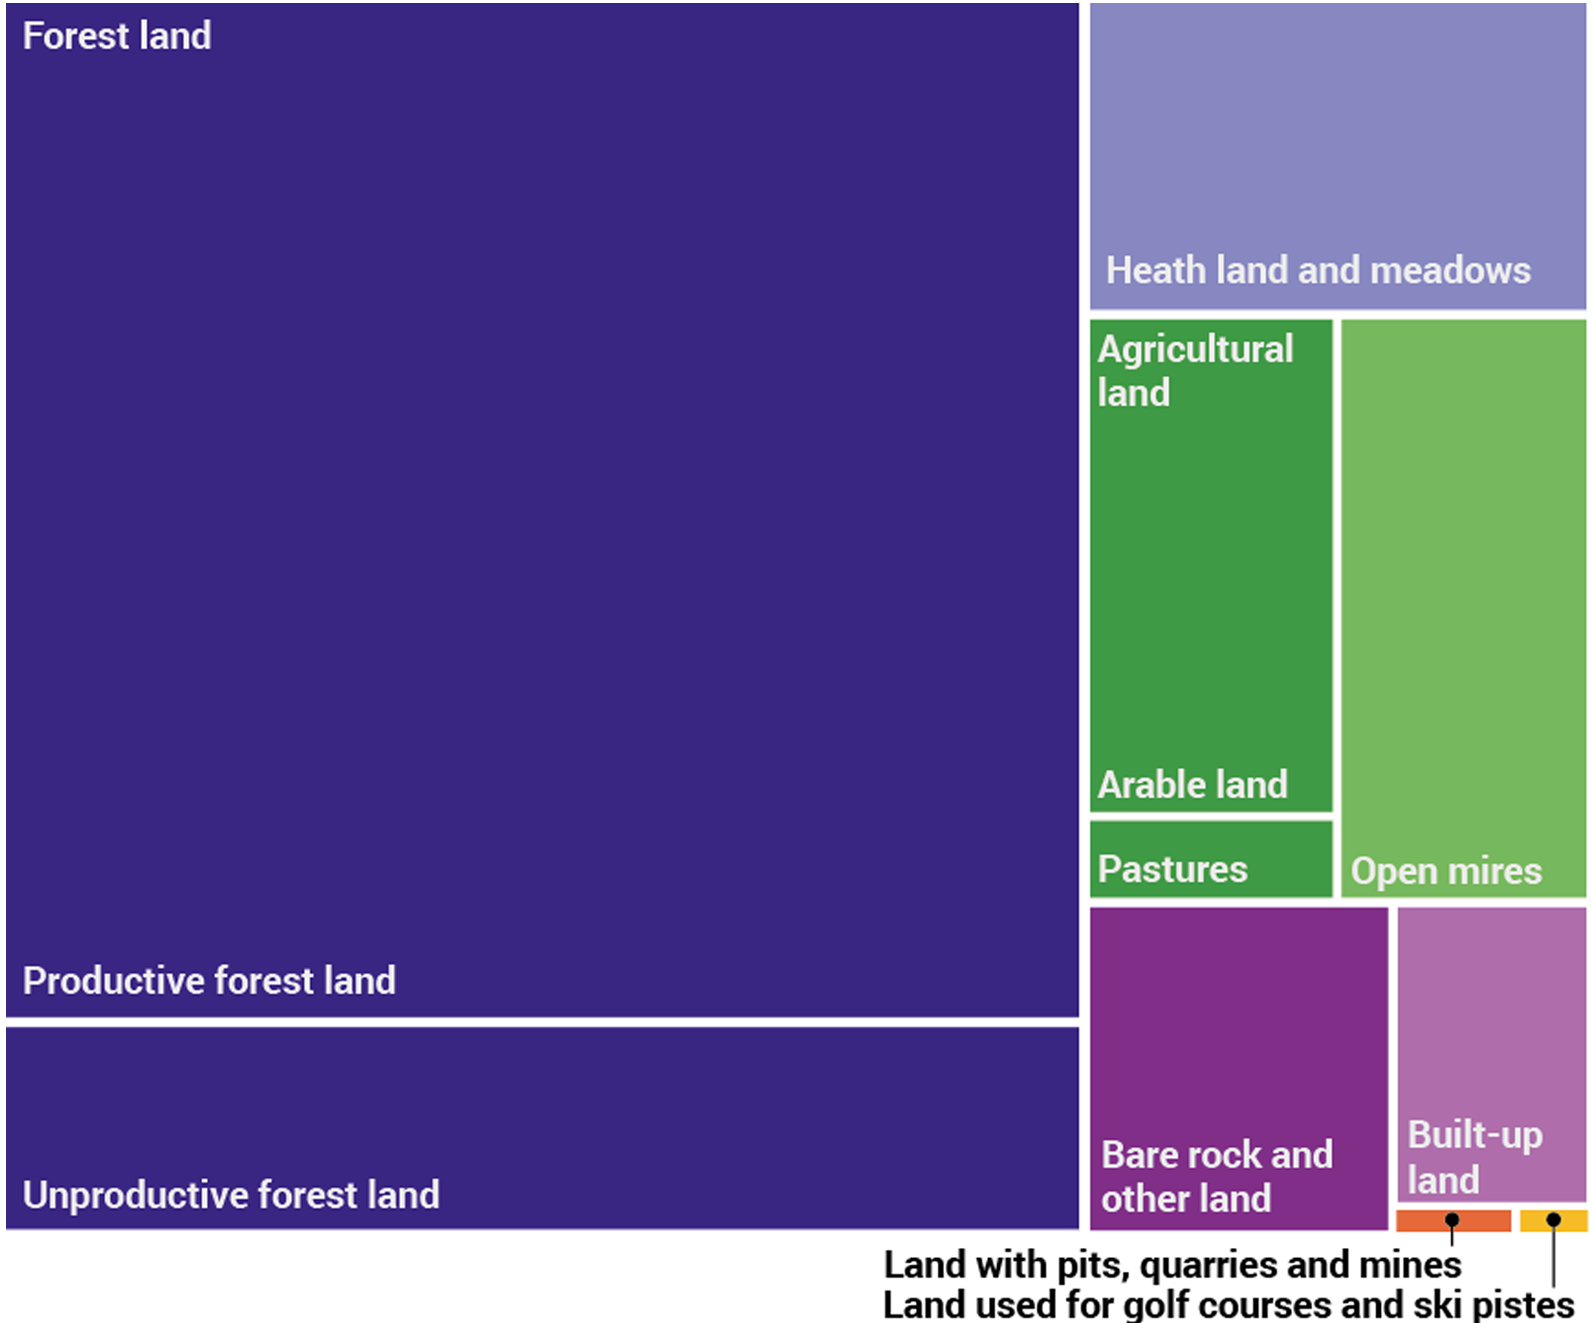 Breakdown of land use 2015